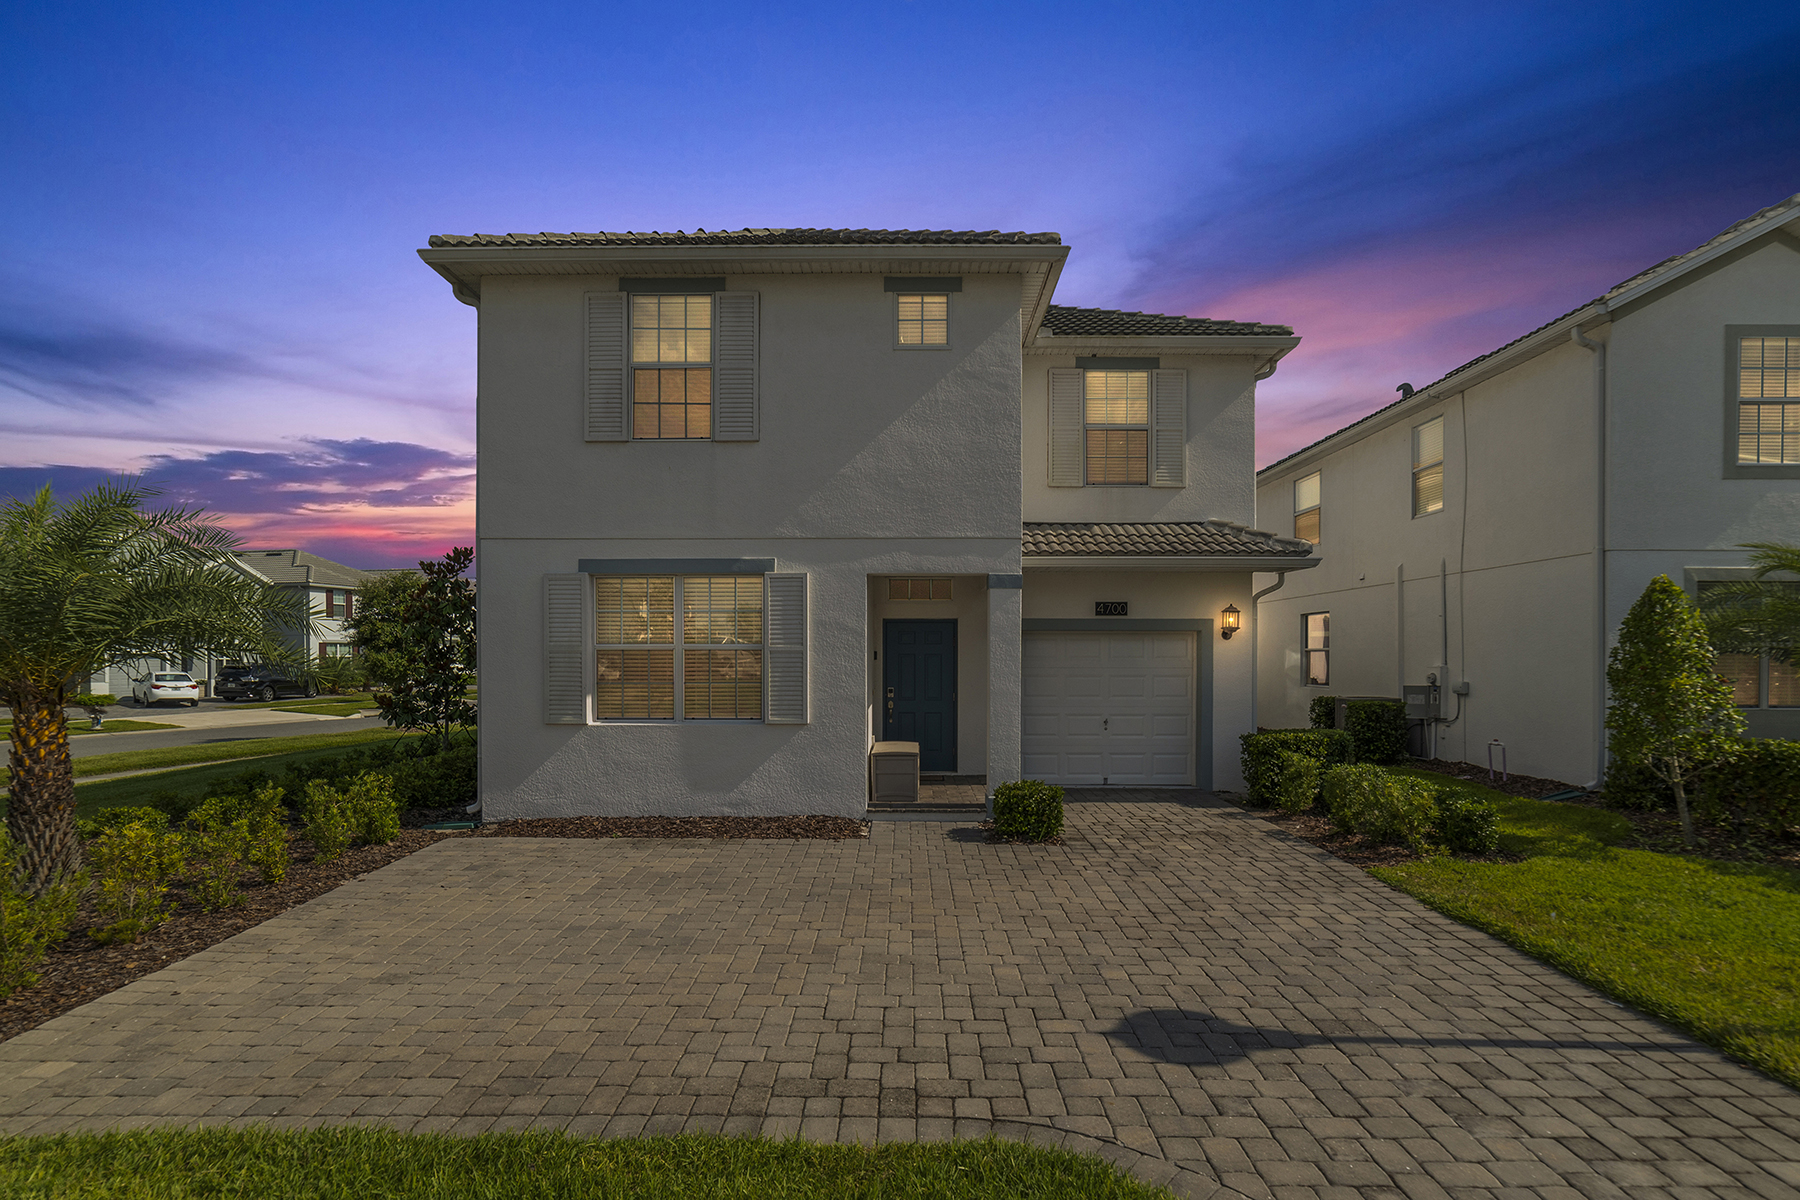 Single Family Homes for Active at KISSIMMEE 4700 Sleepy Hollow Dr Kissimmee, Florida 34746 United States